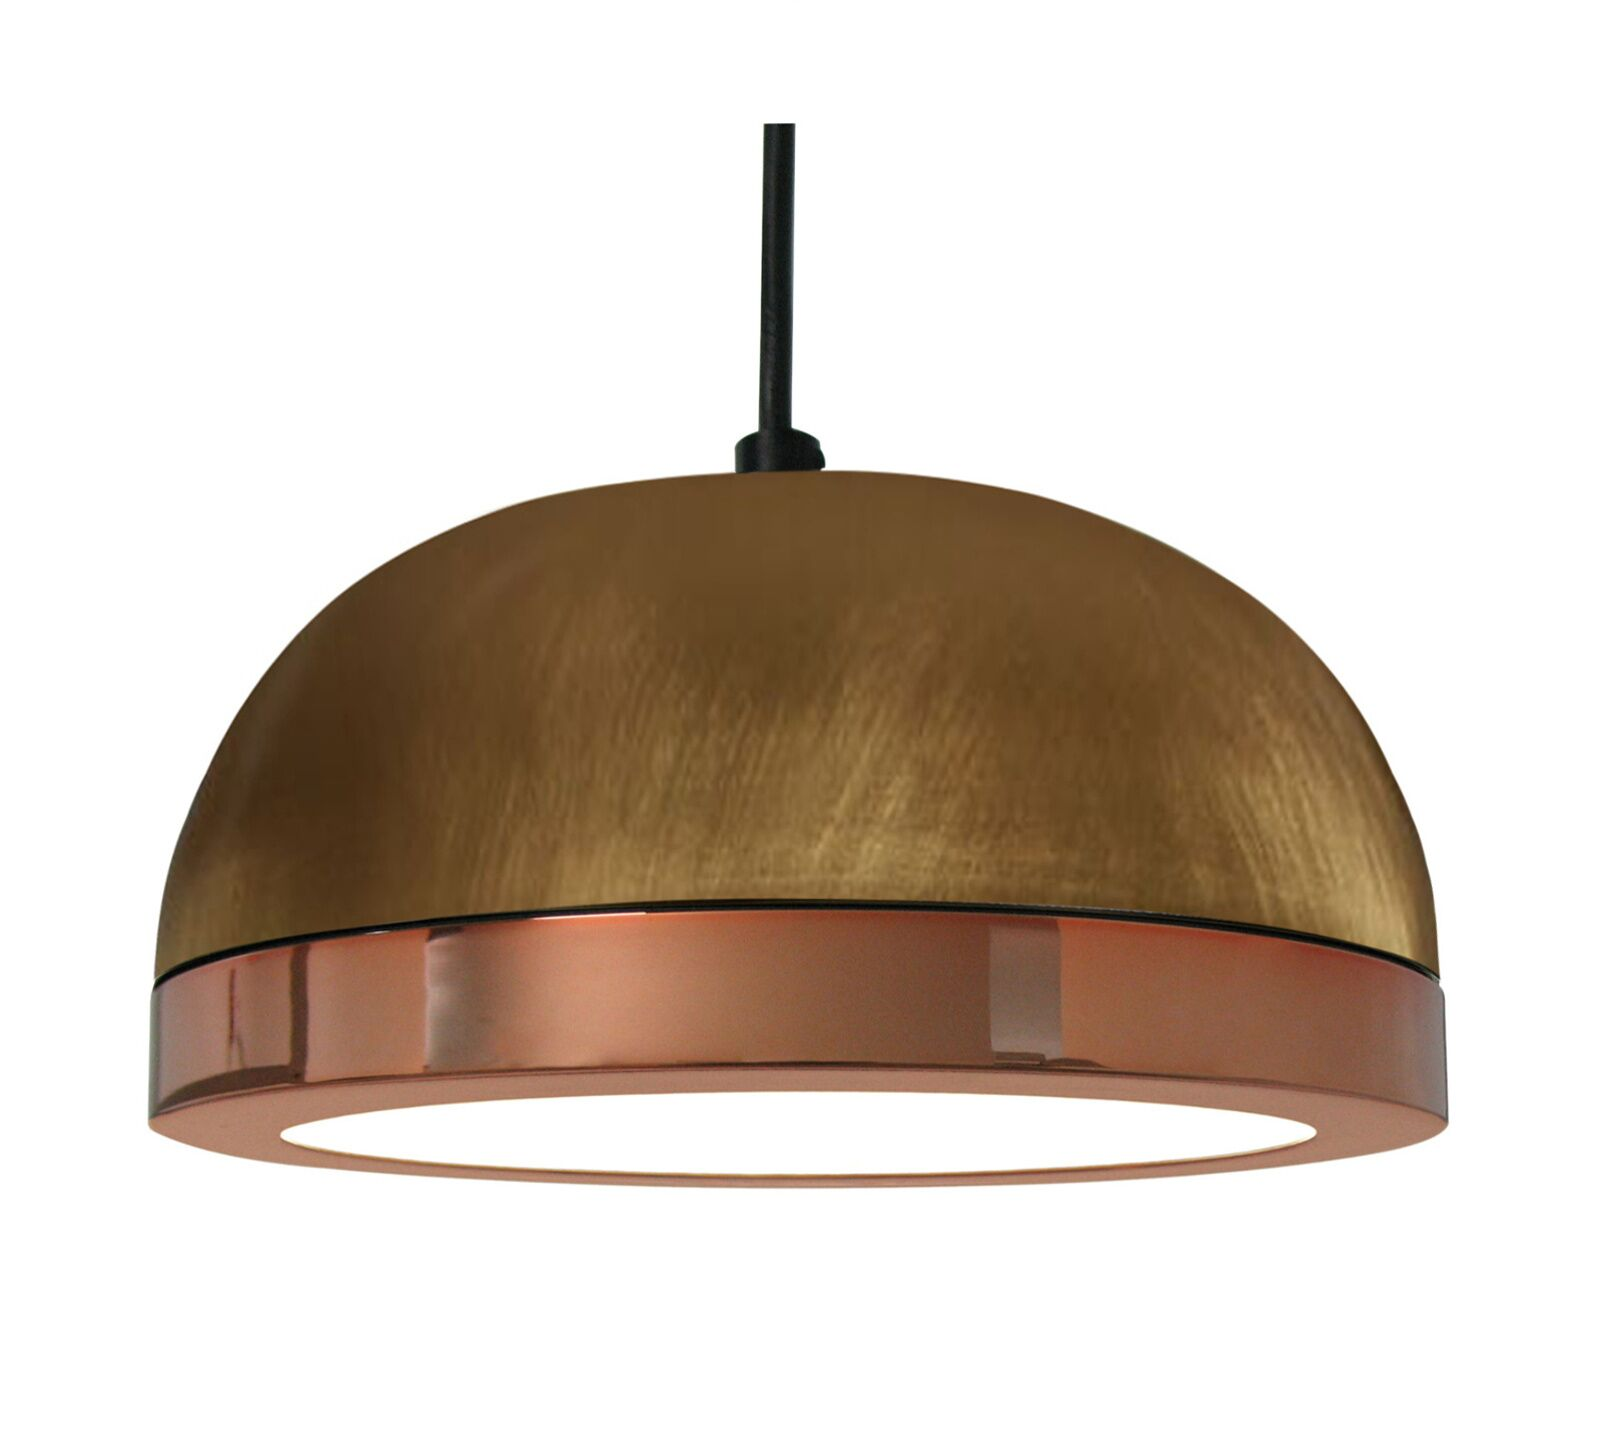 Tooy Molly 1-Light  LED Dome Pendant Shade Color: Copper, Size: 4